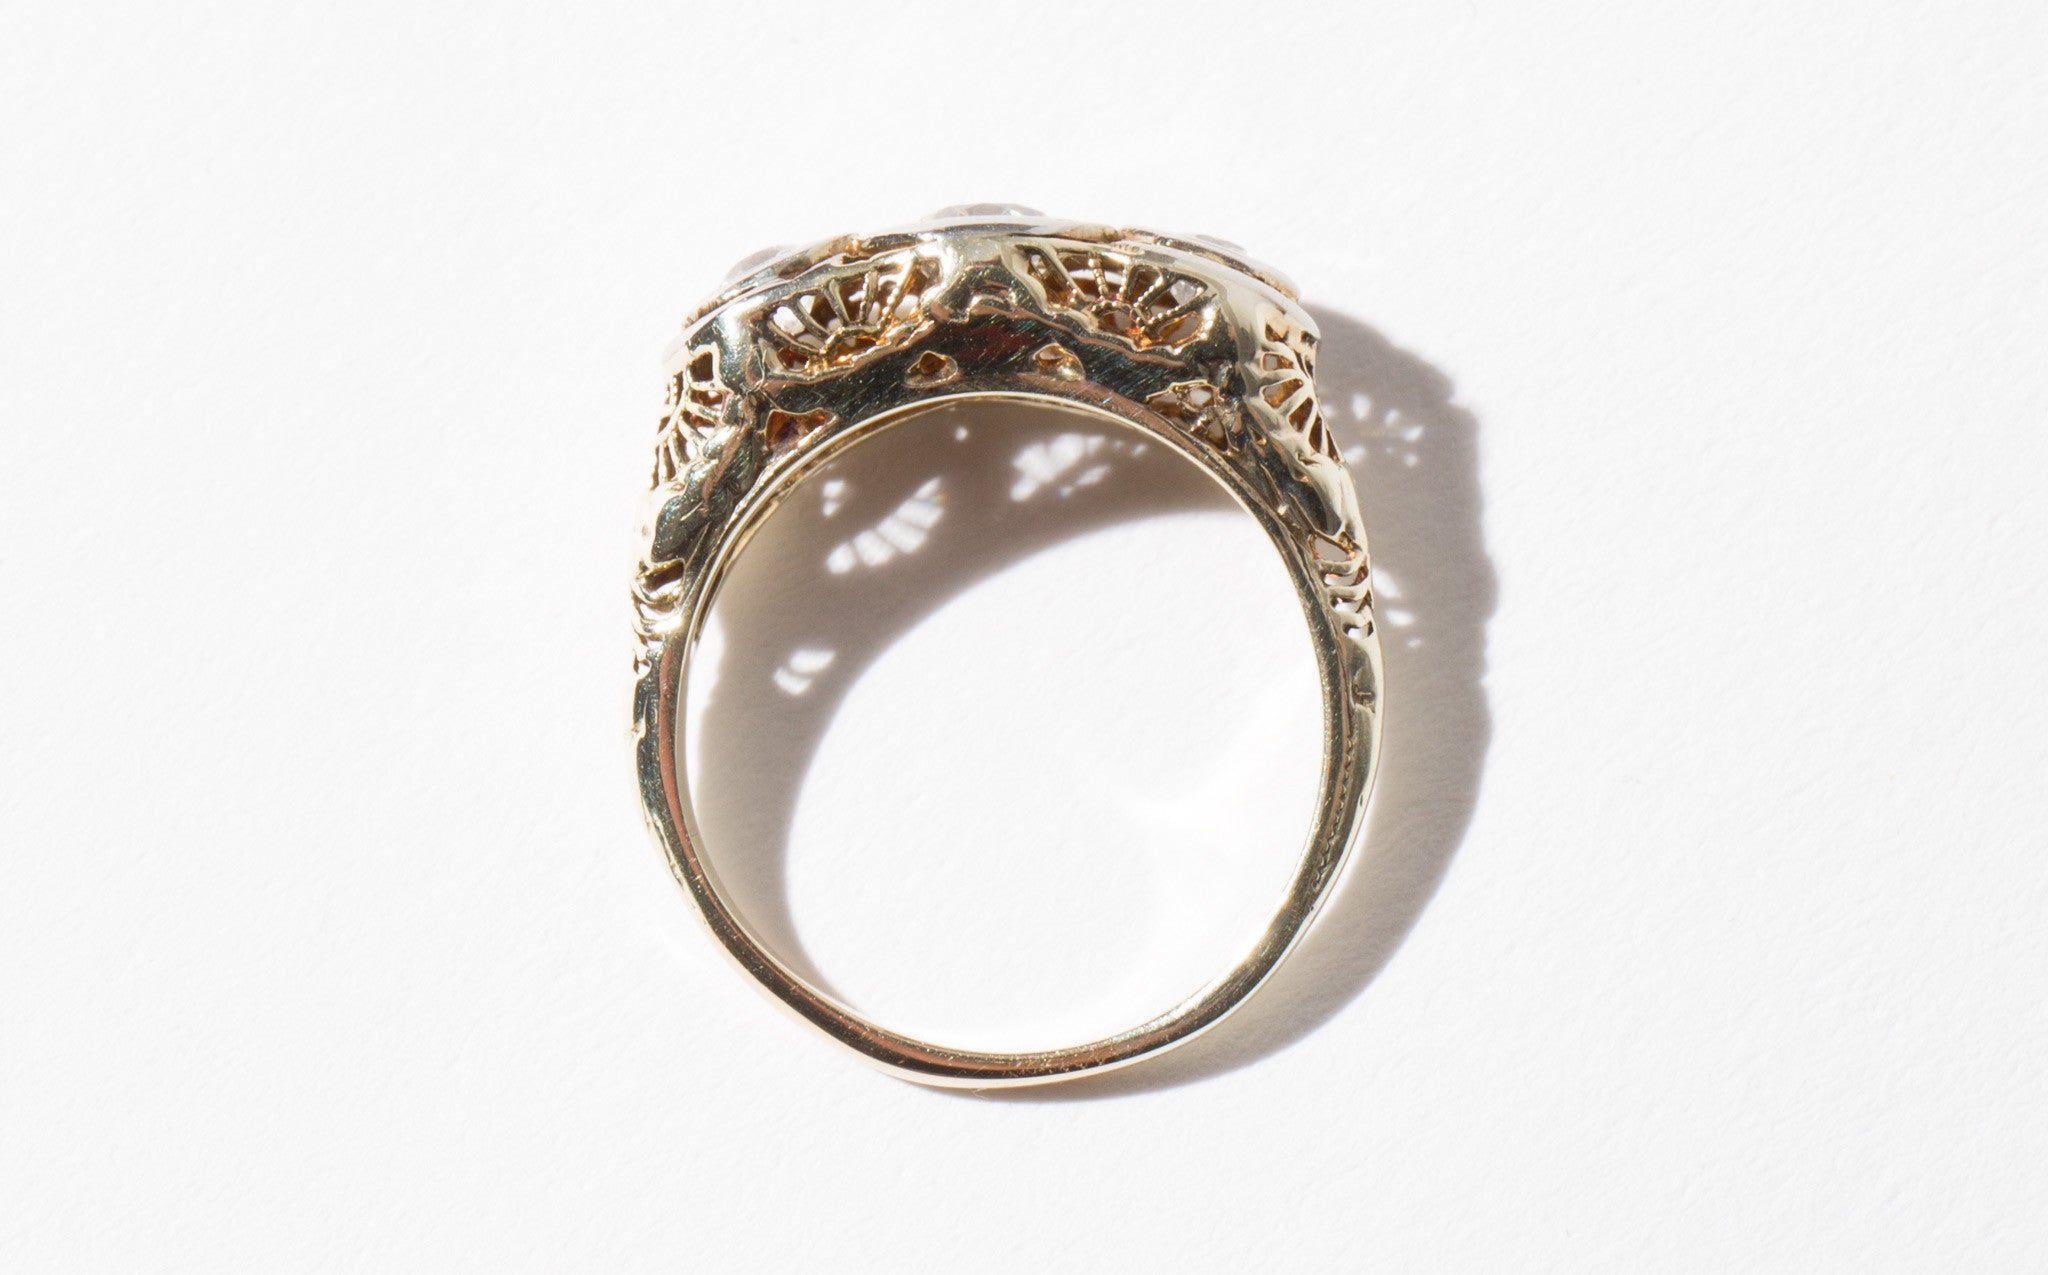 Handmade Filigree Ring